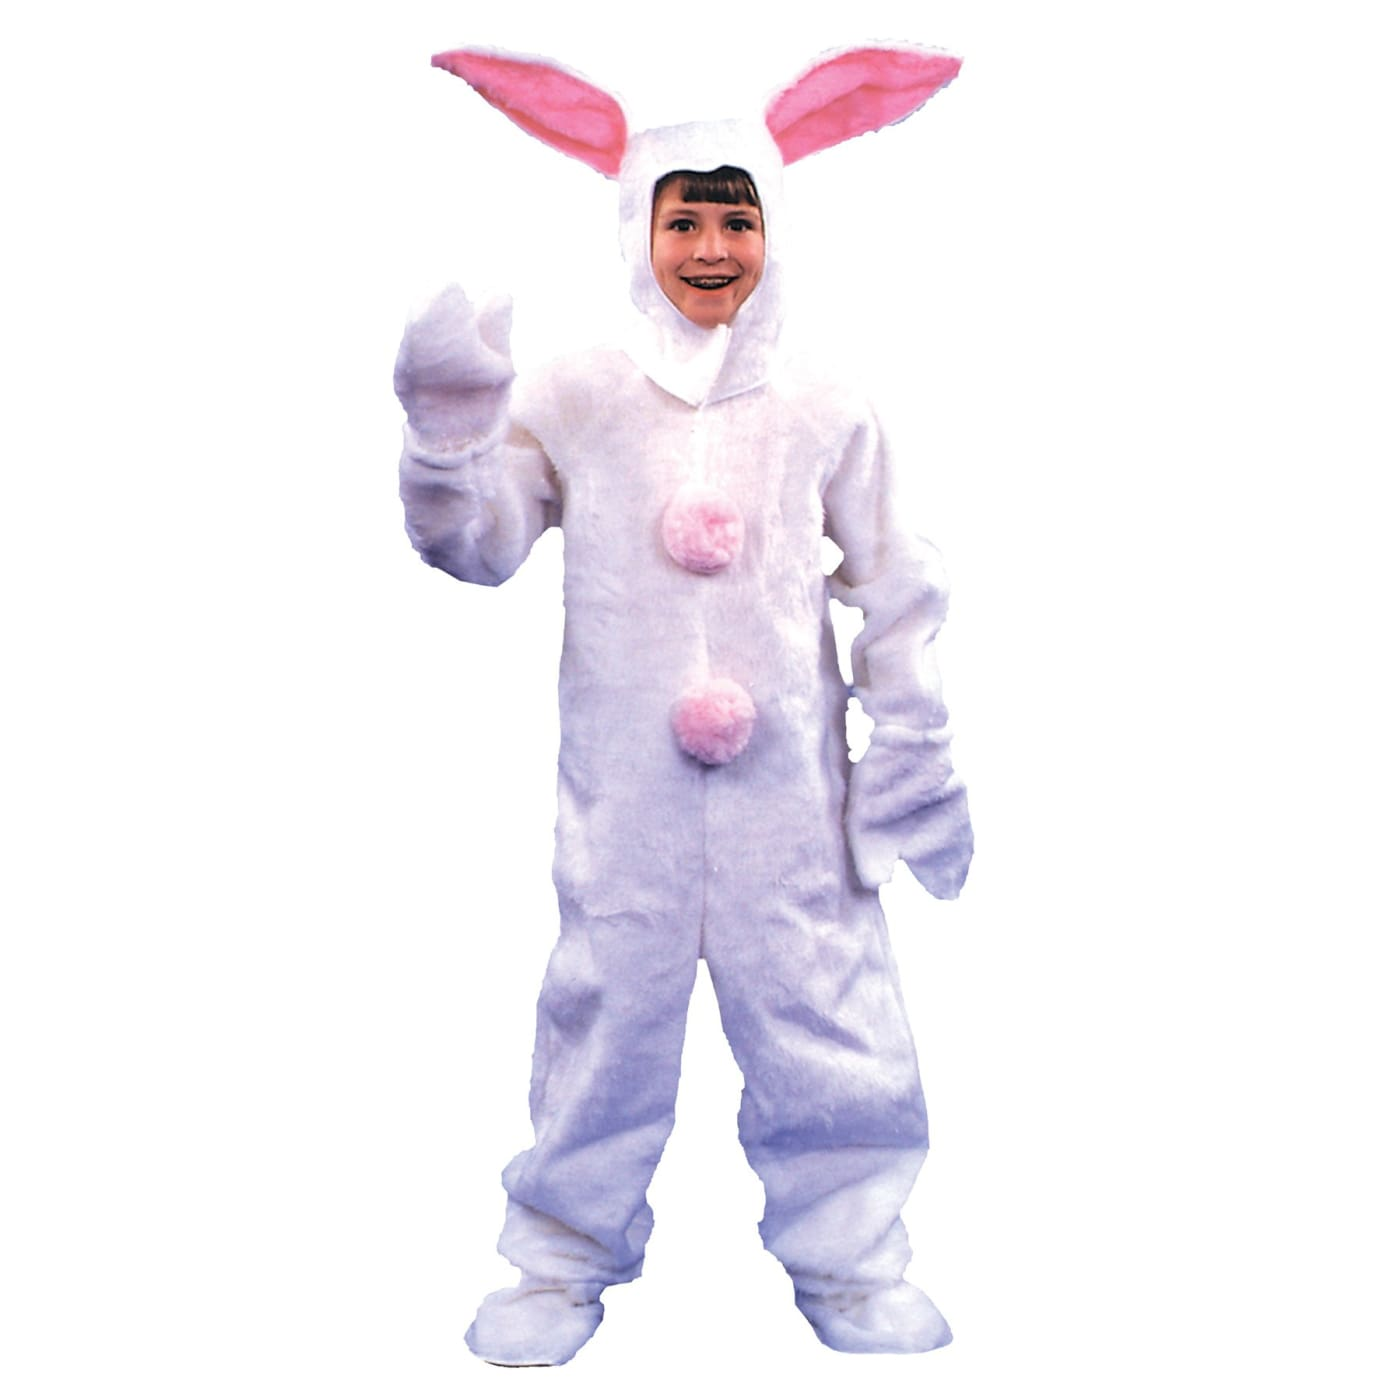 Bunny Suit Mascot Kids Costume 6 8 Alice In Wonderland Costume Animal Amp Insect Costume Cauldron